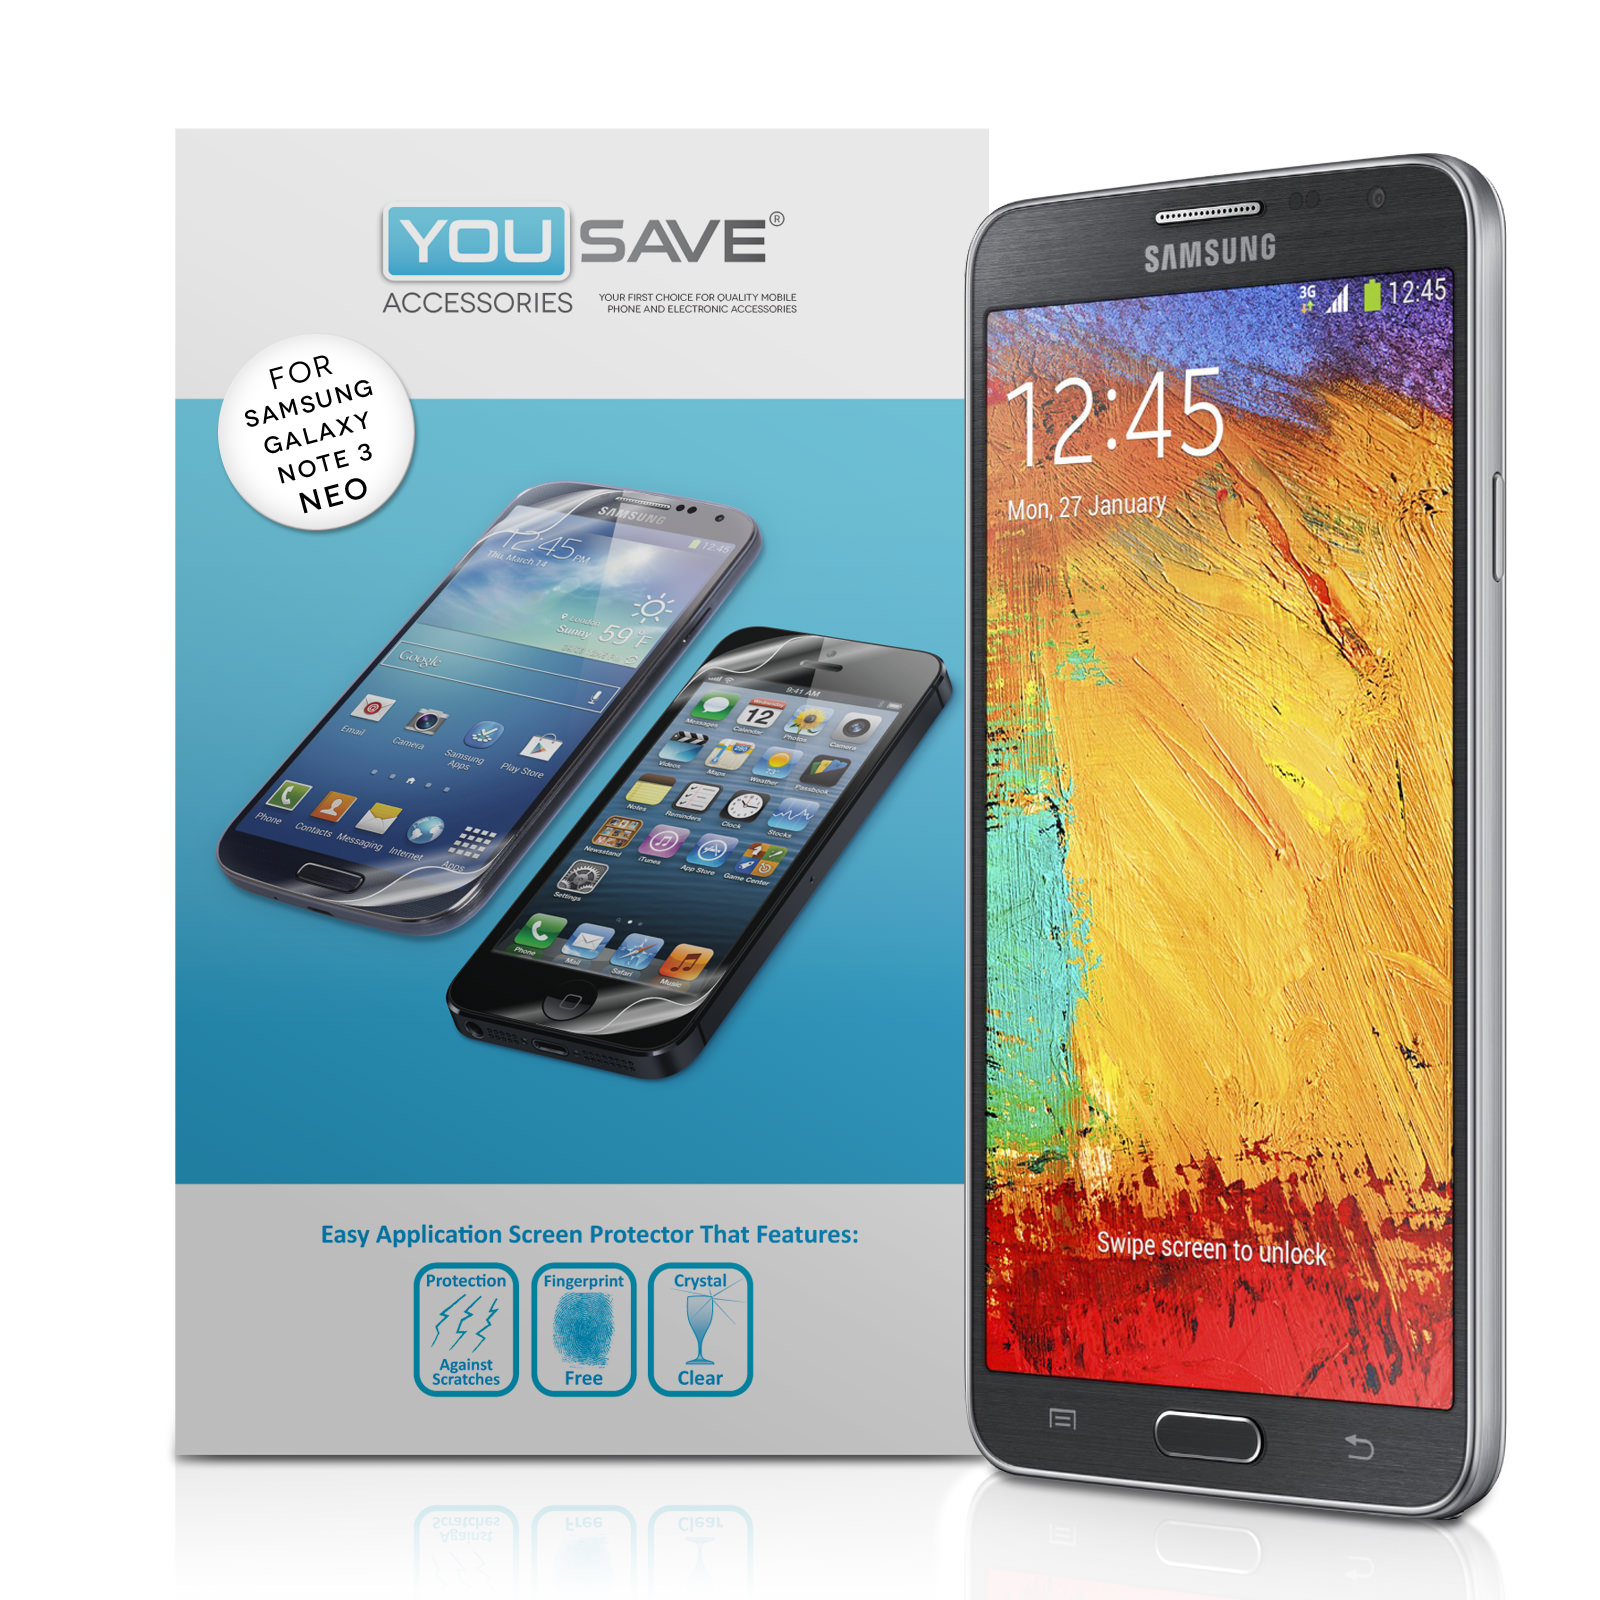 YouSave Accessories Samsung Galaxy Note 3 Neo Screen Protectors x3